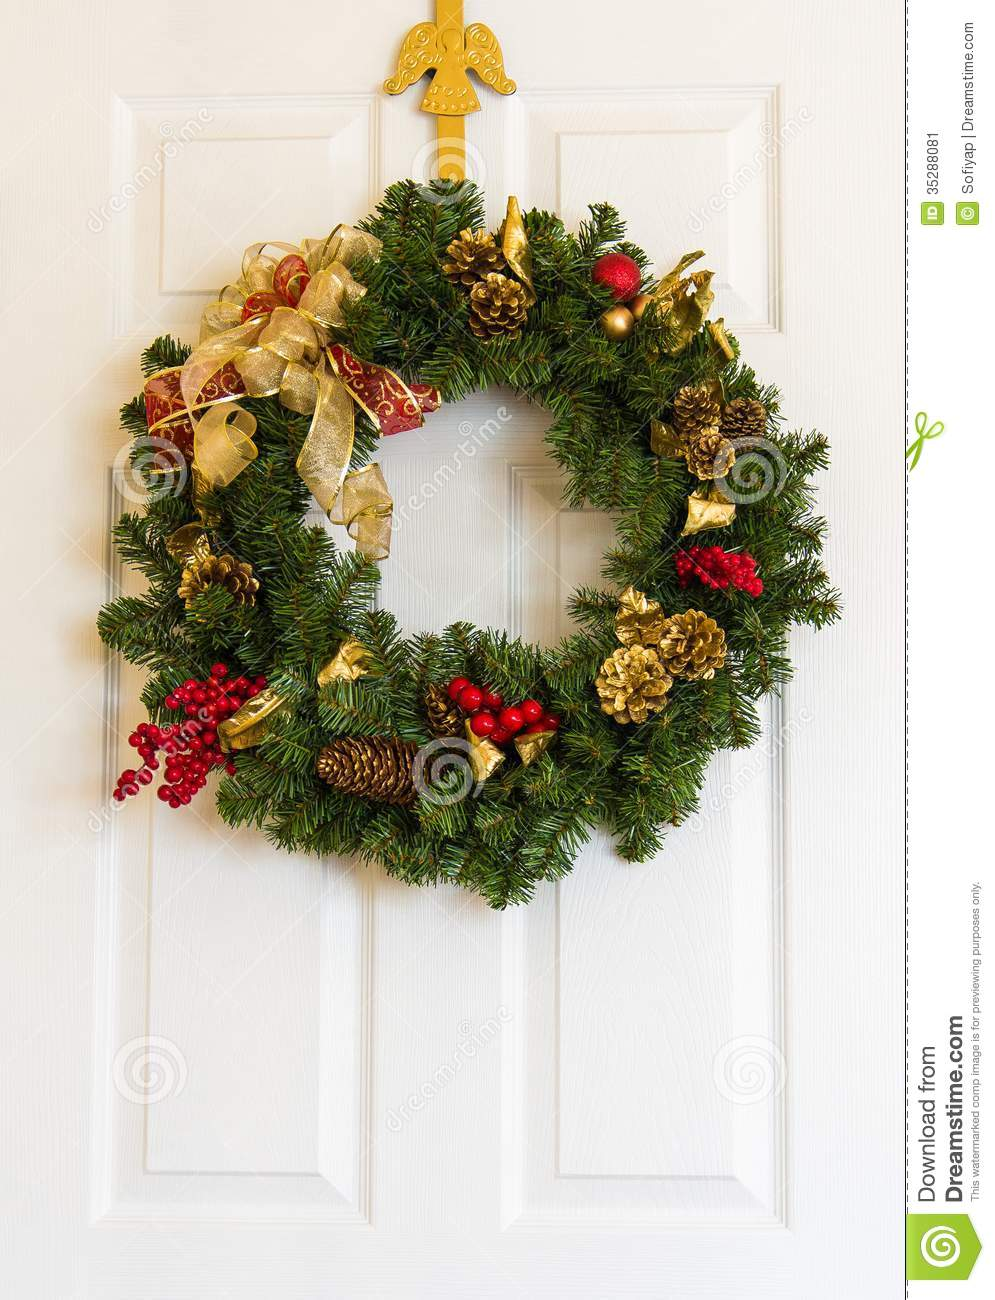 Christmas wreath on door. & Christmas wreath on door. stock image. Image of green - 35288081